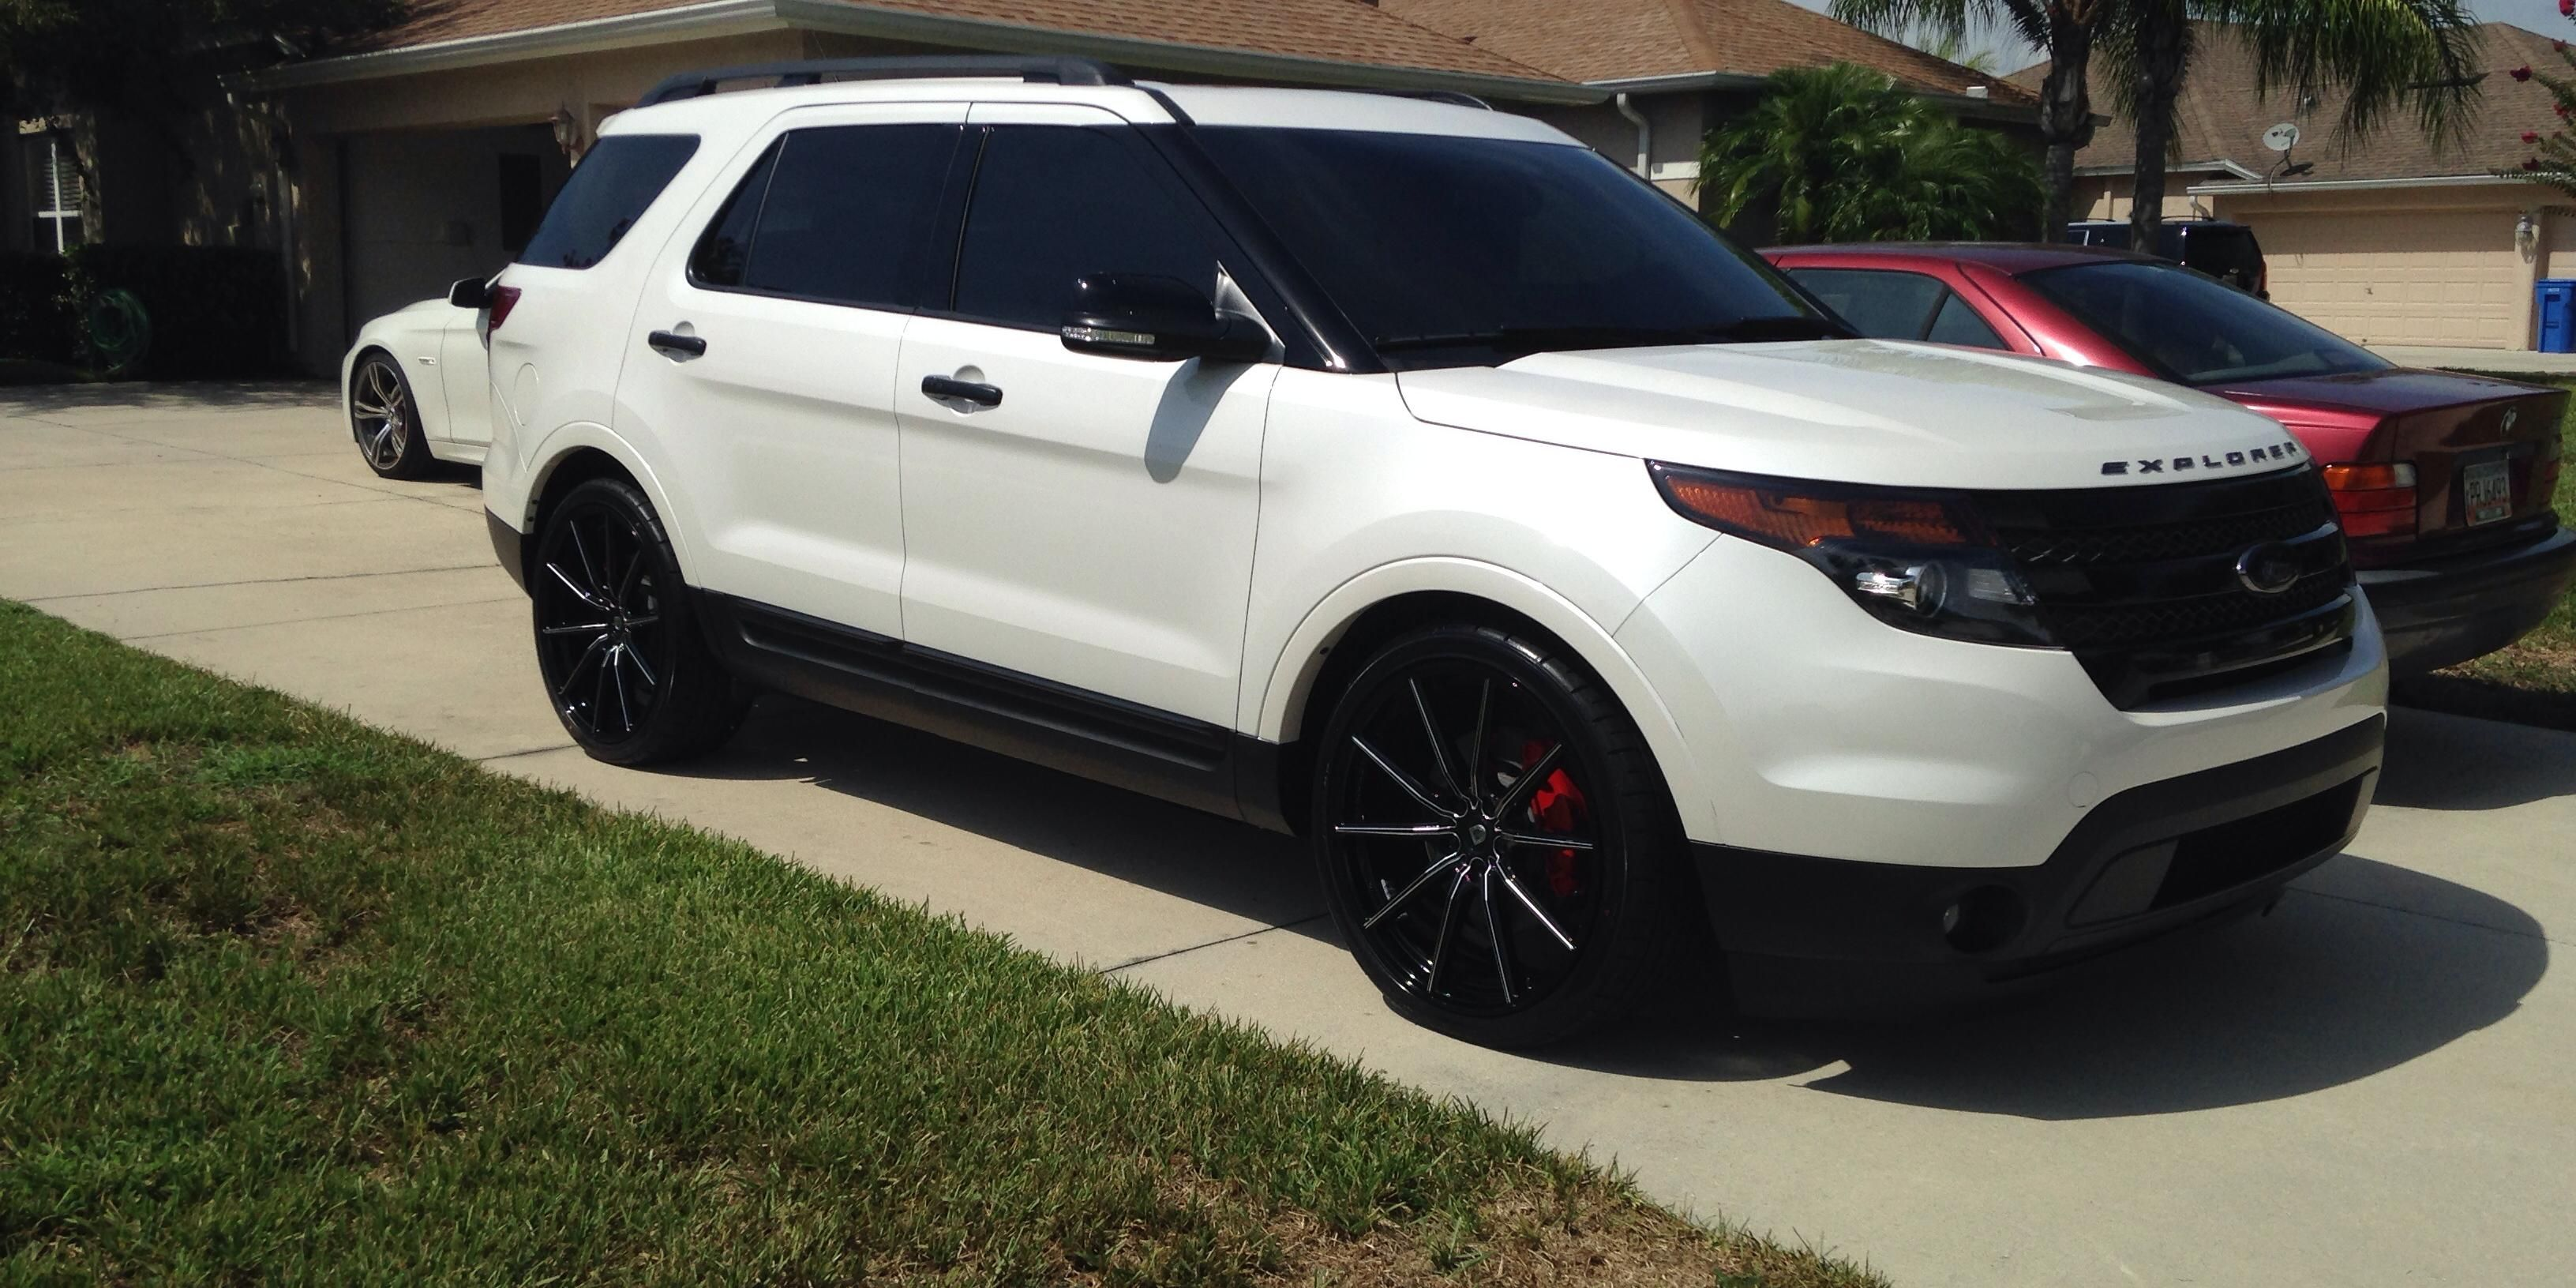 Exactly How I Plan For The Explorer To Look Once The Guys Get Done With It Can T Wait Ford Explorer Sport 2014 Ford Explorer Ford Explorer